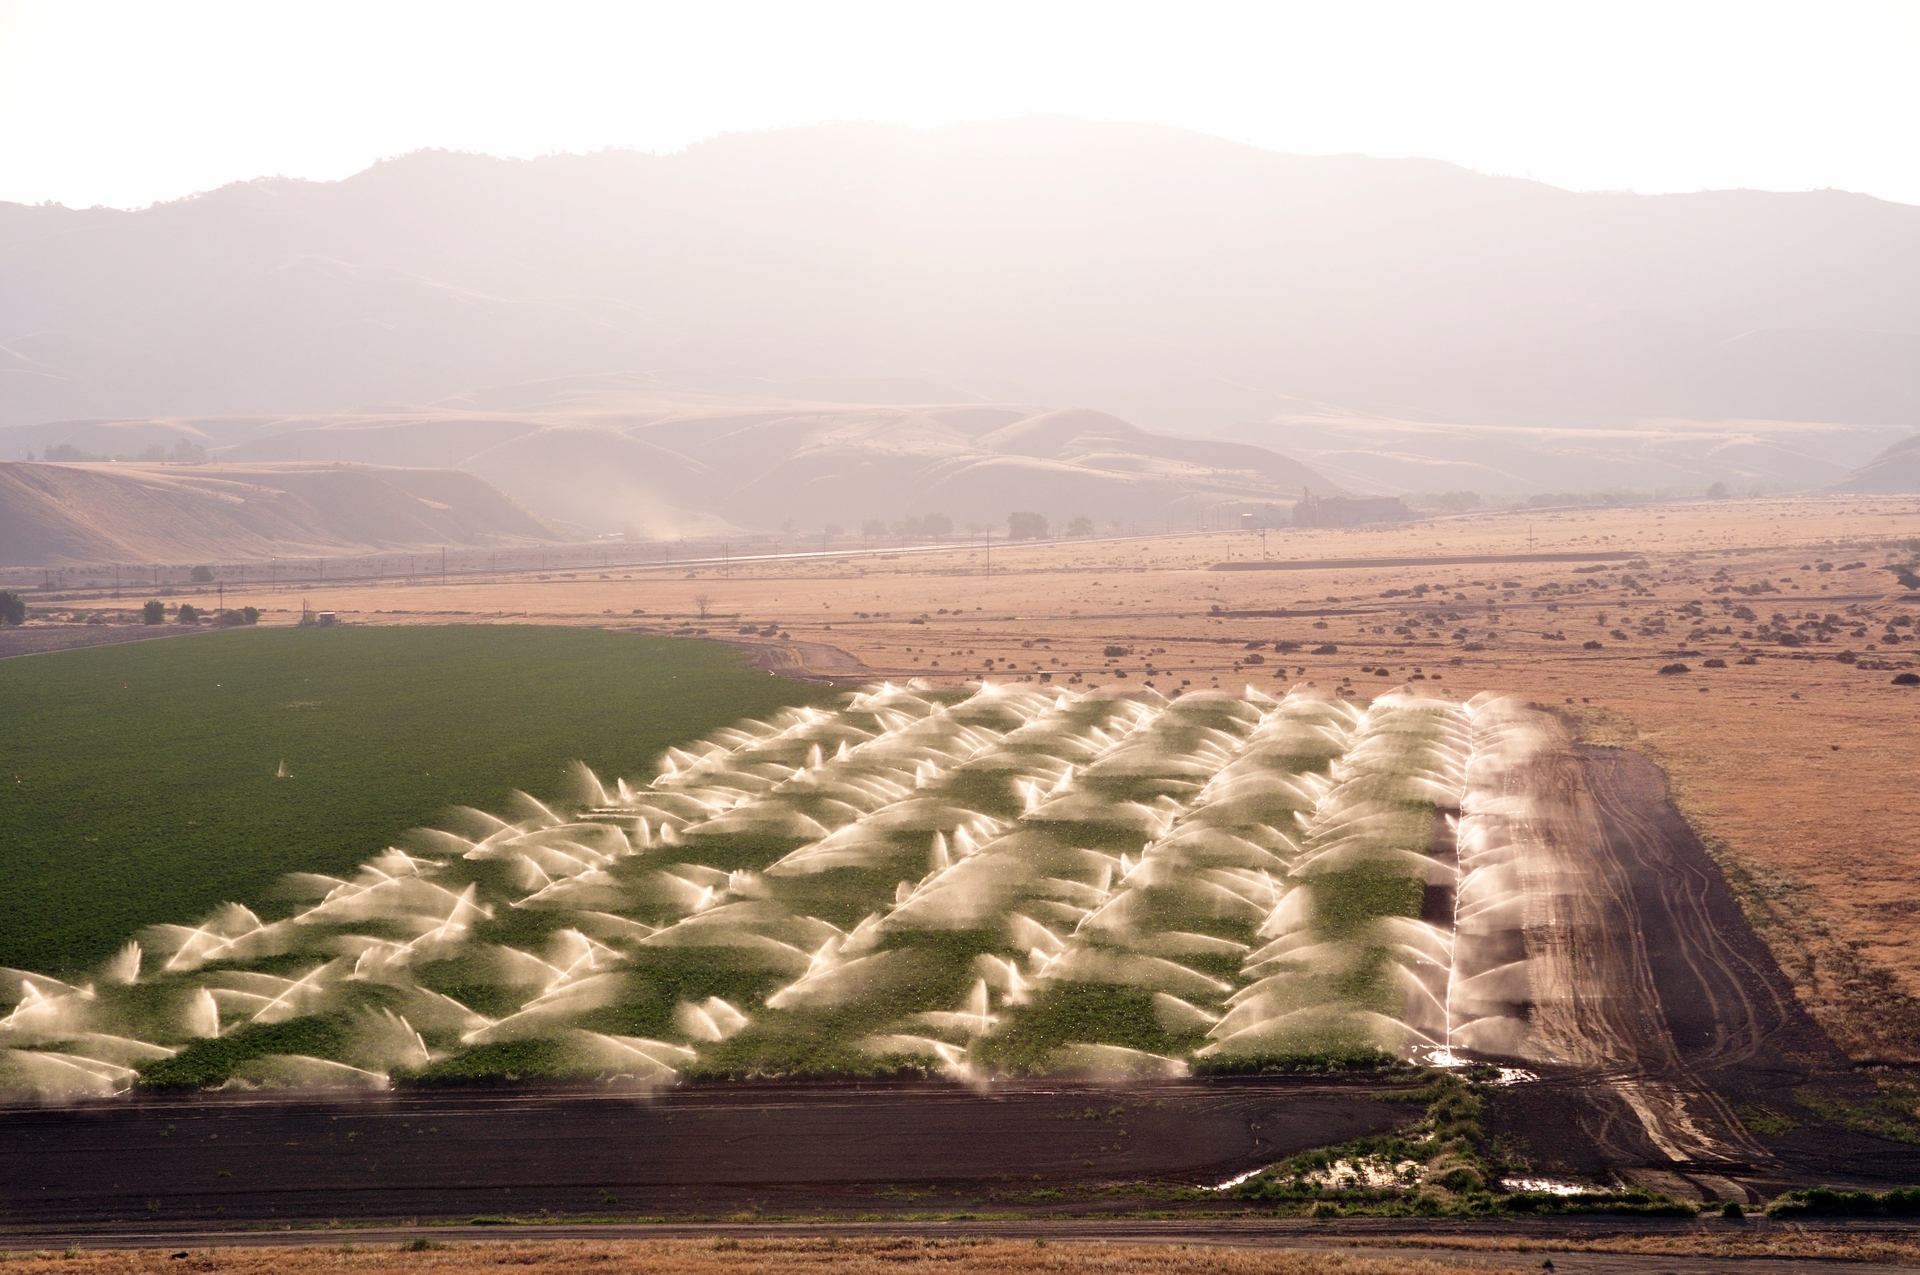 The water that is held at Millerton Lake is used primarily for irrigation of several millions of acres of farmland in the San Joaquin Valley.